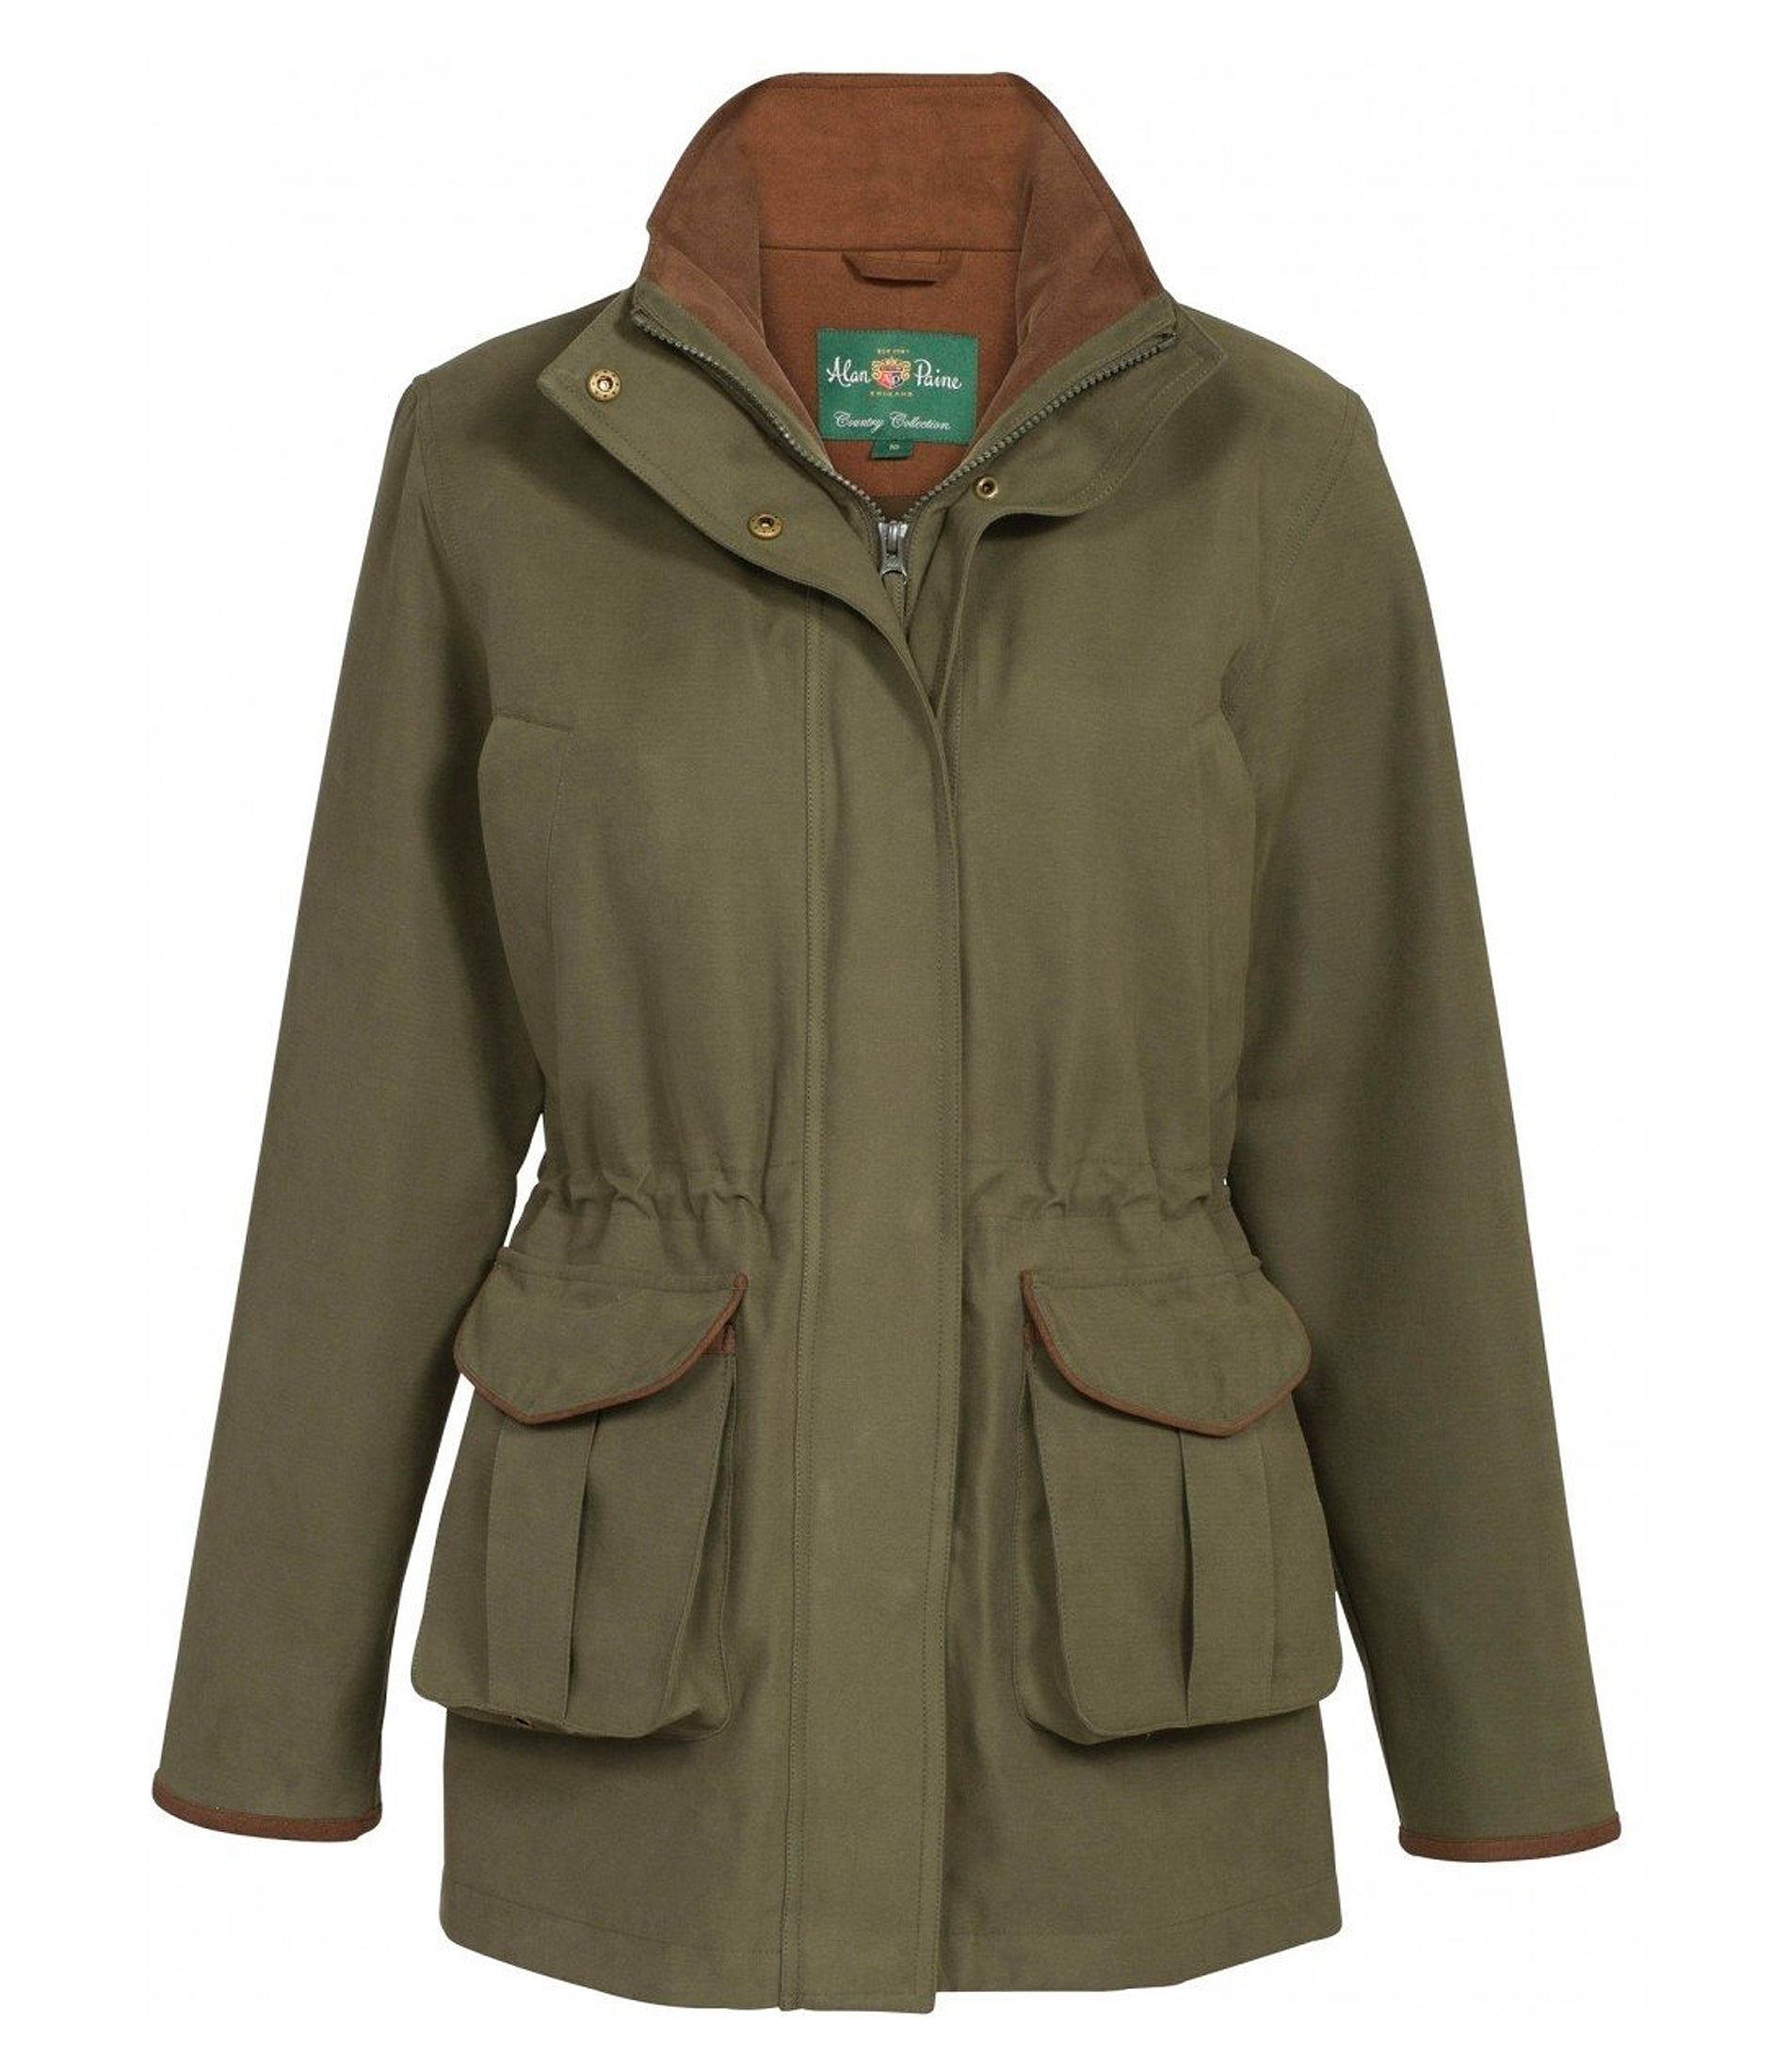 Alan Paine Berwick Ladies Waterproof Shooting Coat RRP £219.95